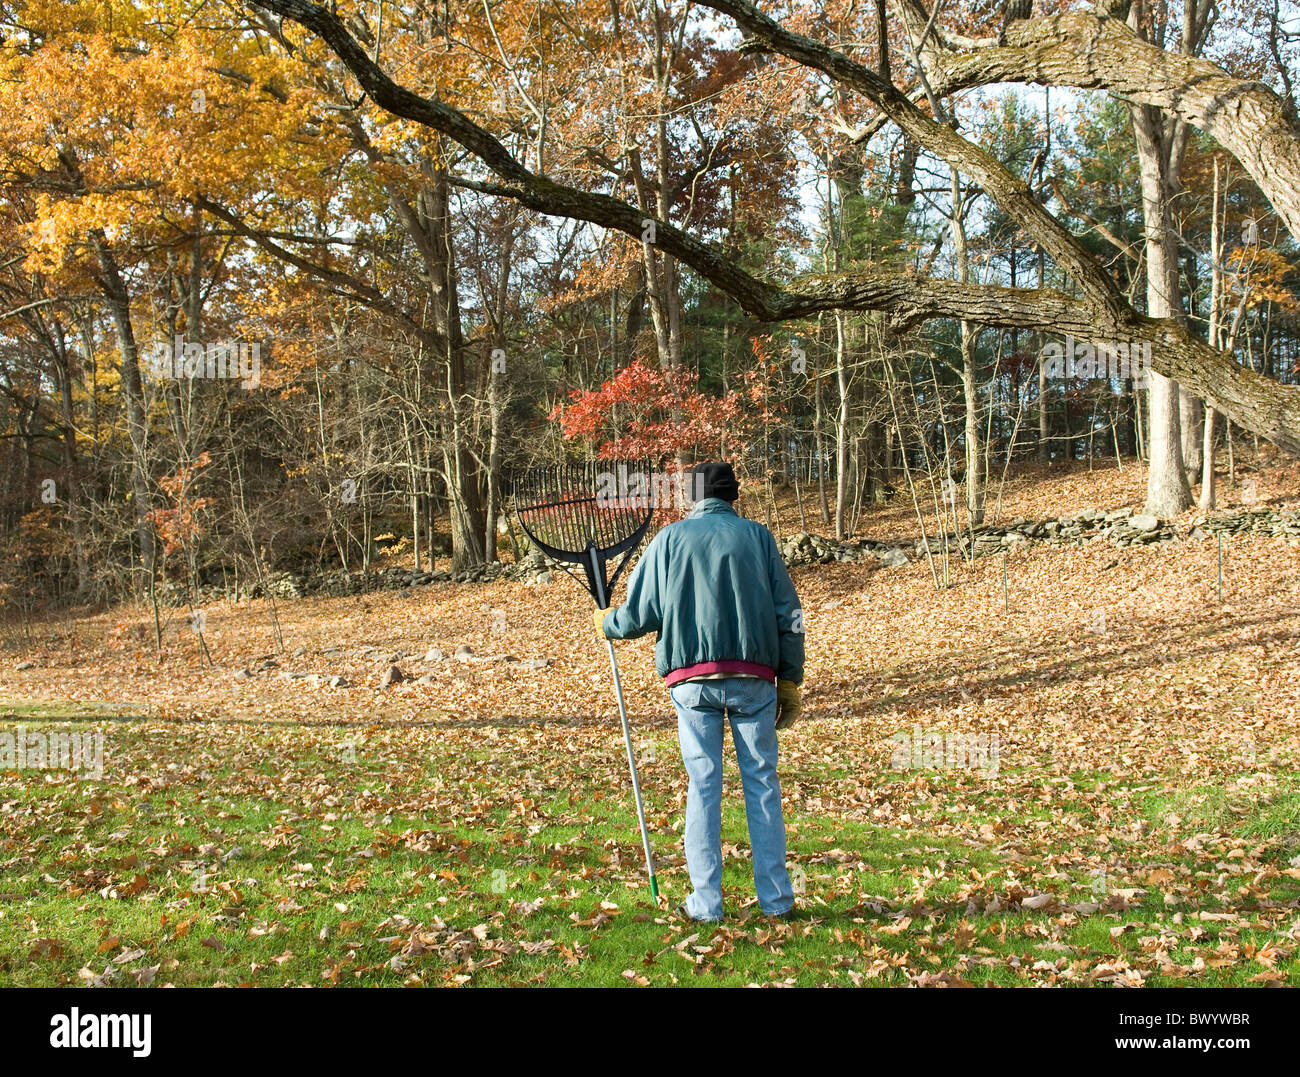 man facing task of raking leaves in large yard - Stock Image